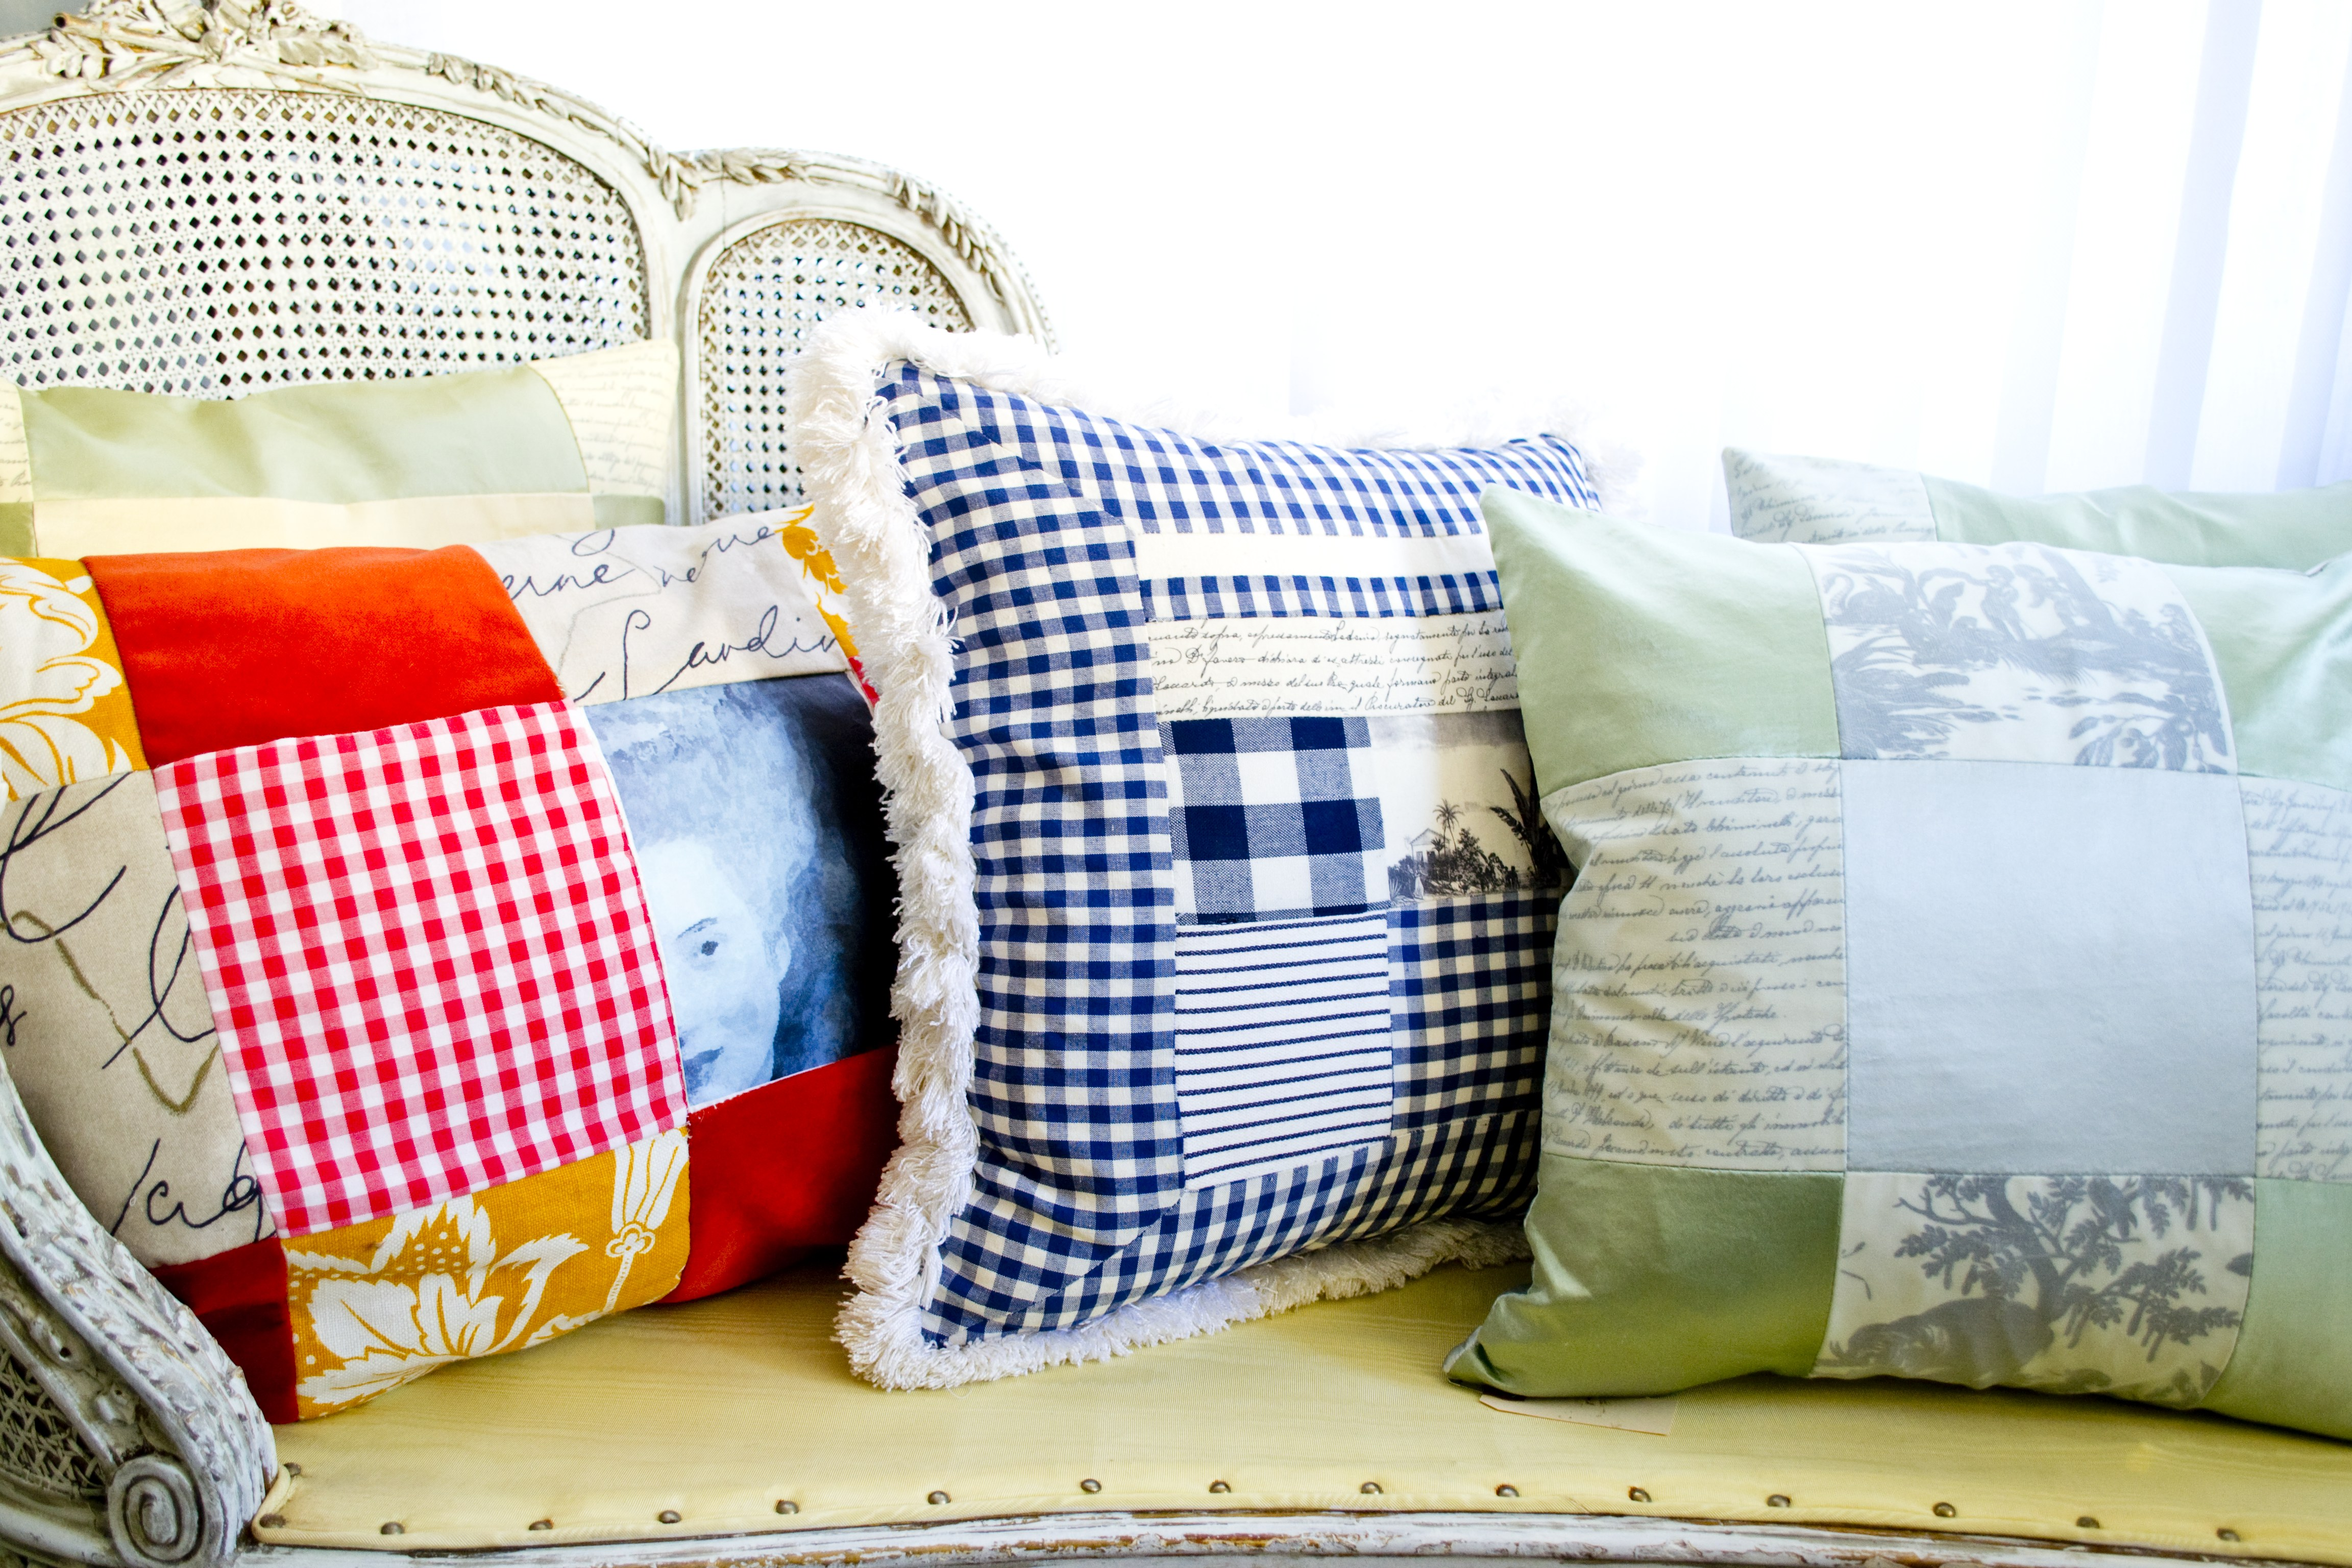 Medium Wide DIY Laser Print Pillows